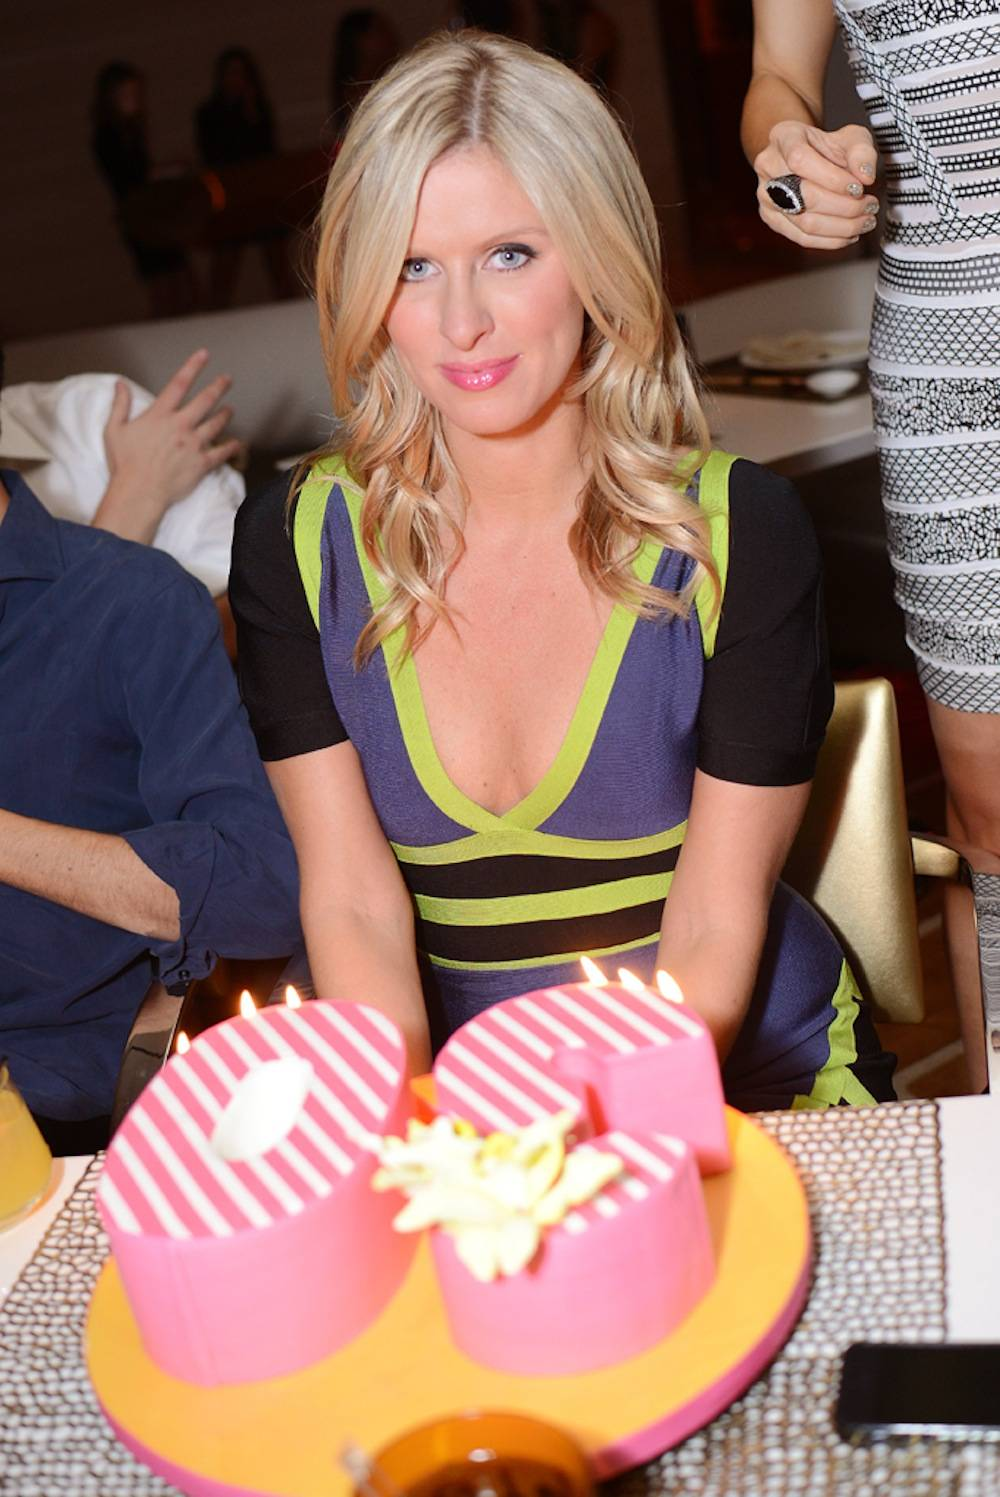 Haute Event Nicky Hilton Celebrates Her 30th Birthday At Andreas